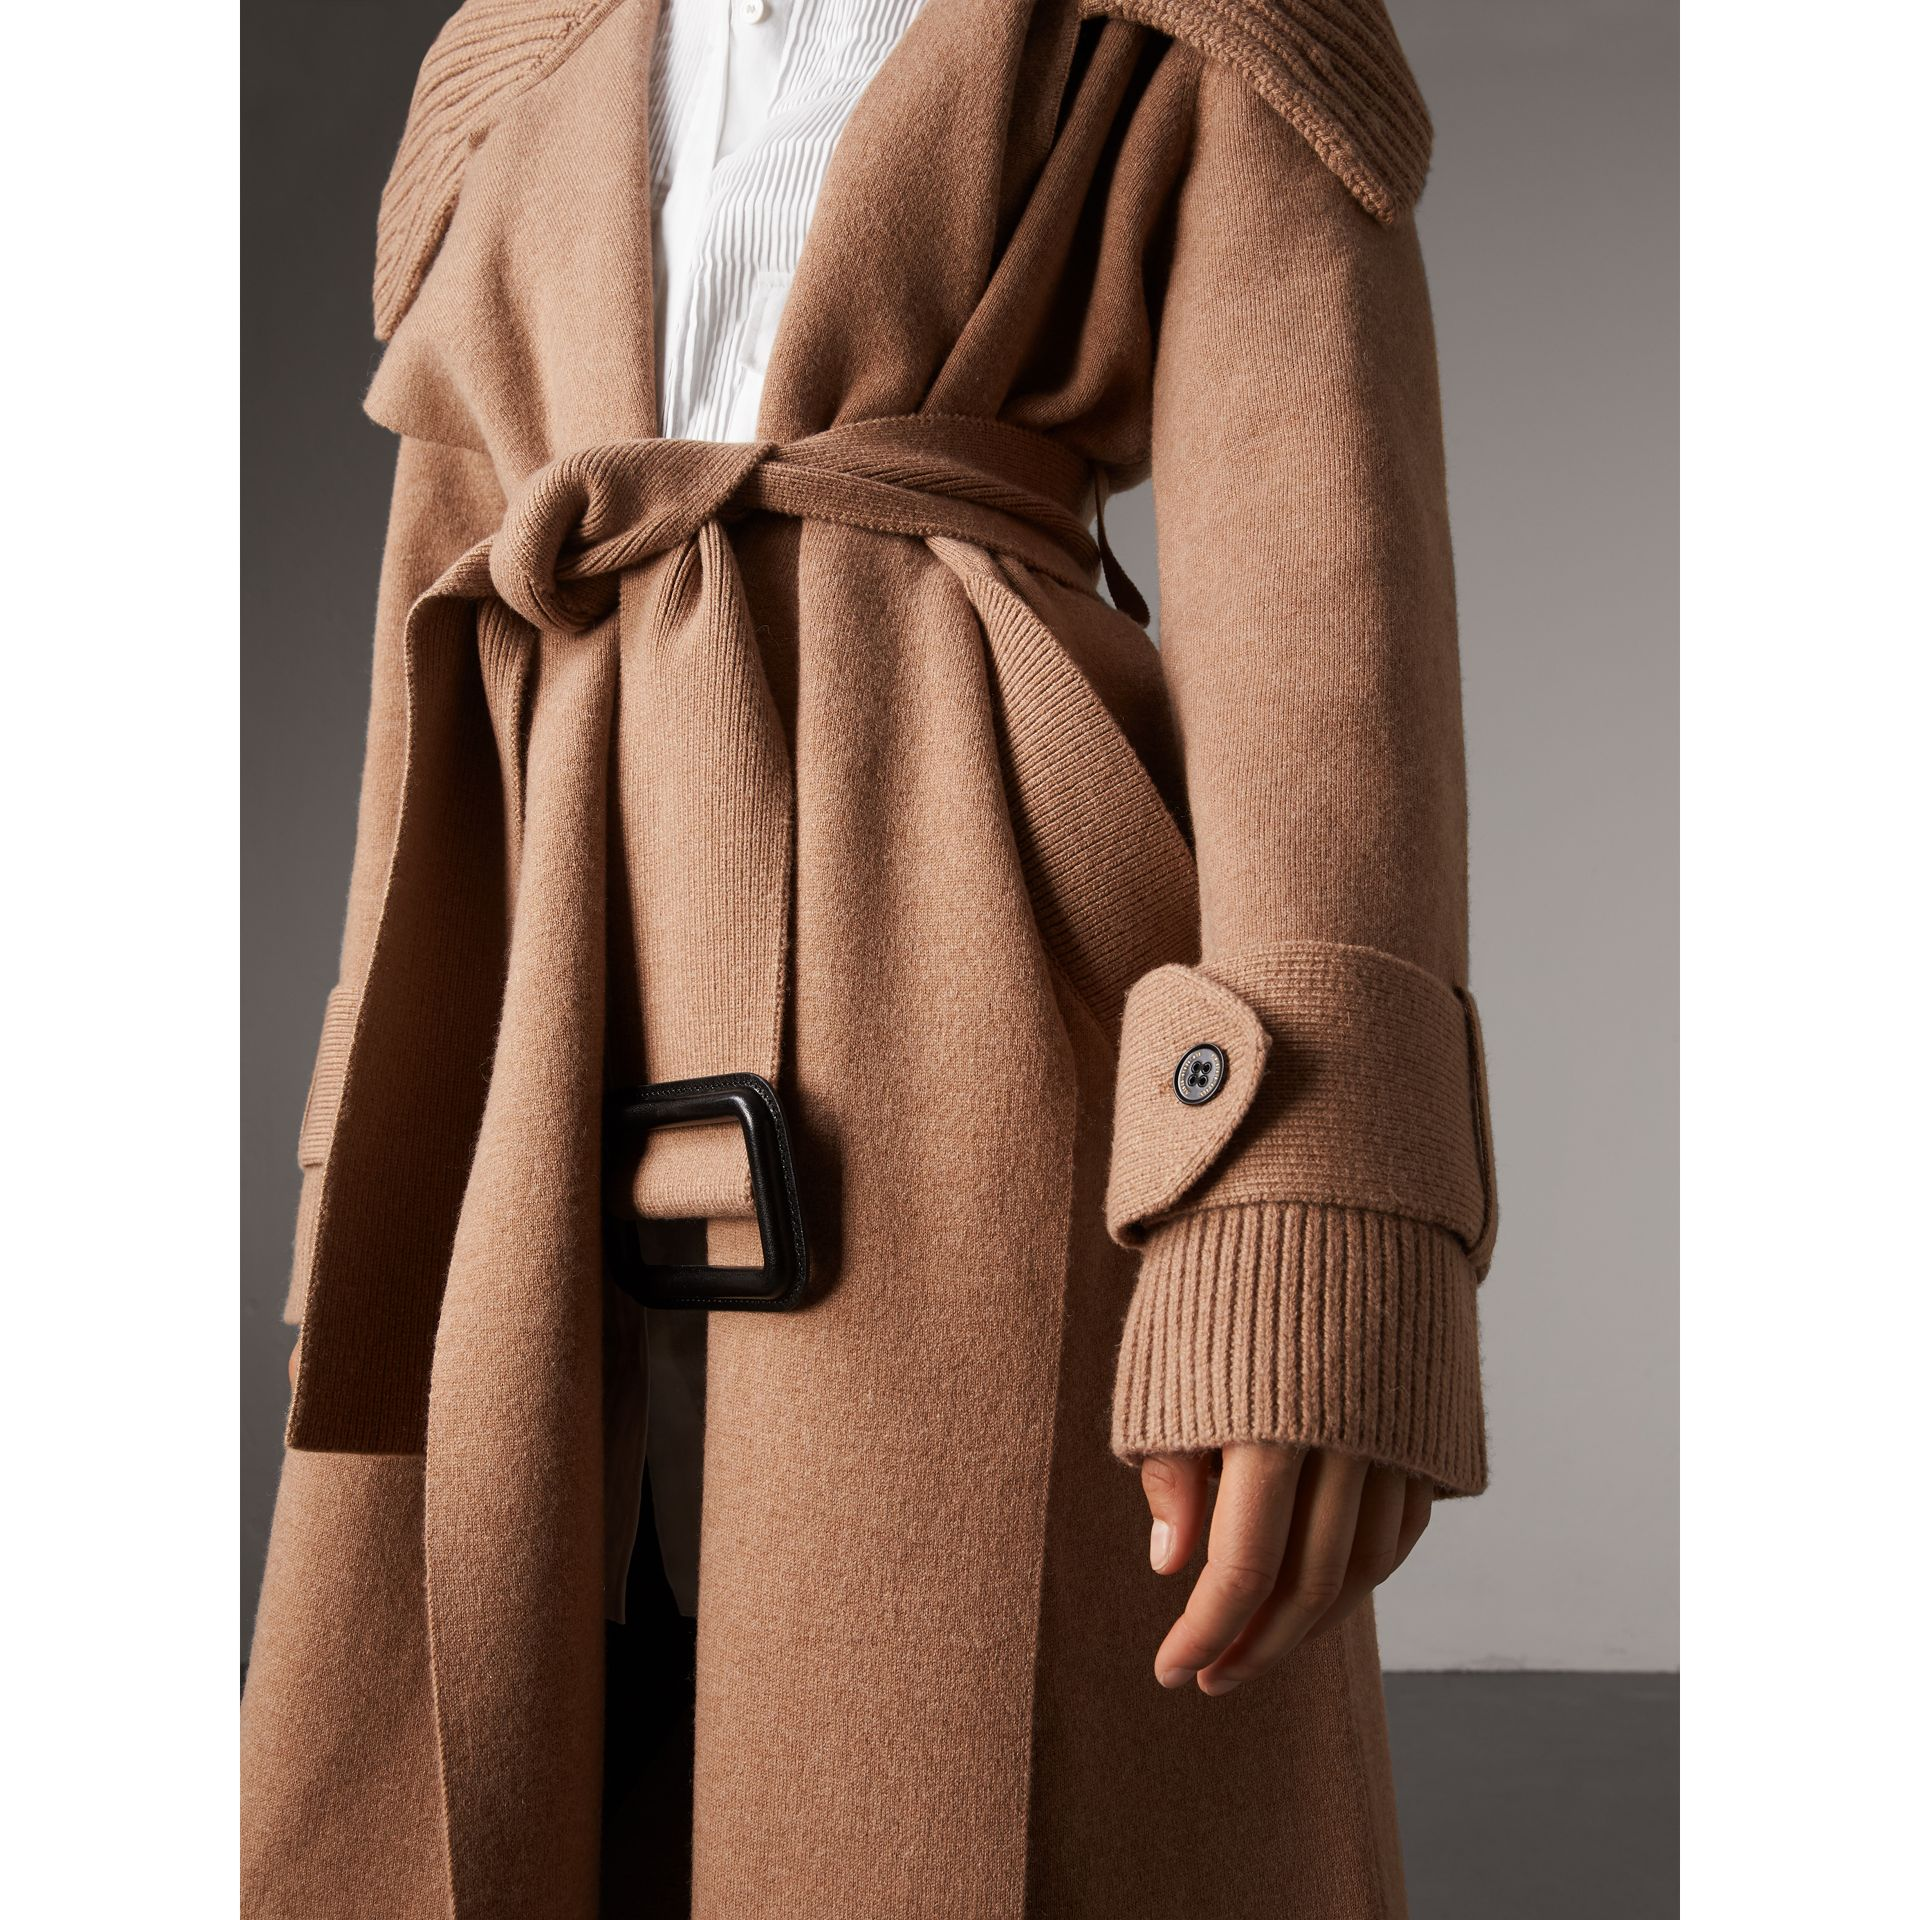 Knitted Wool Cashmere Wrap Coat in Camel - Women | Burberry United States - gallery image 1